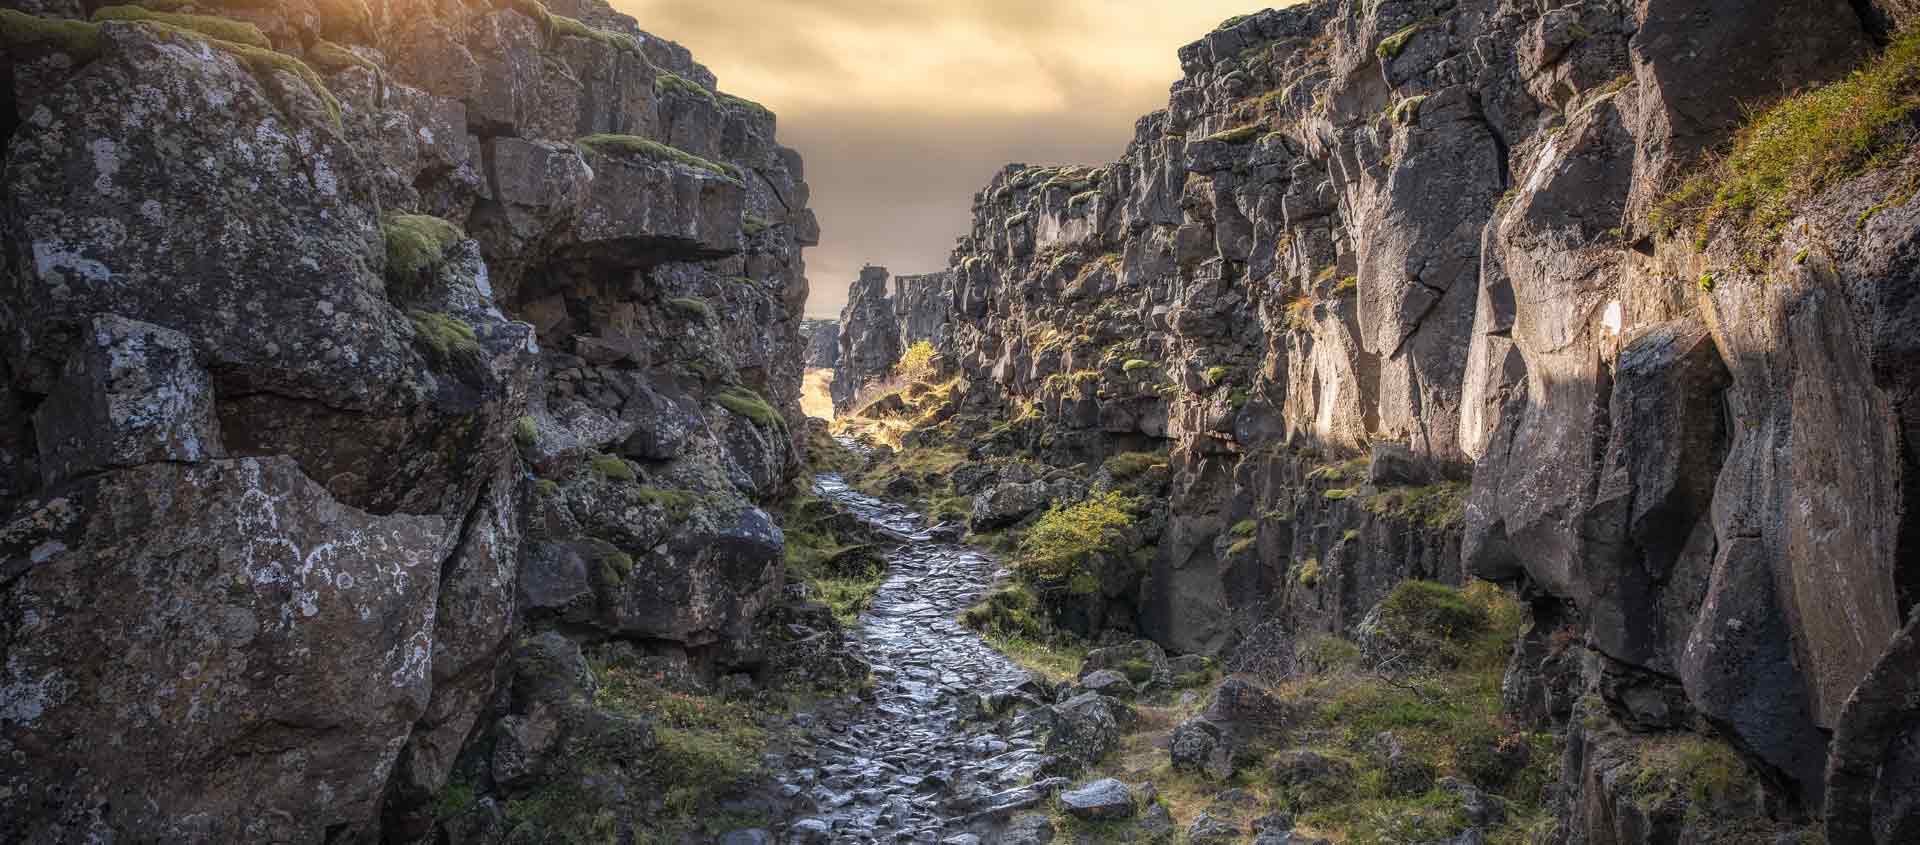 Iceland in Spring Tour image showing Thingvellir National Park